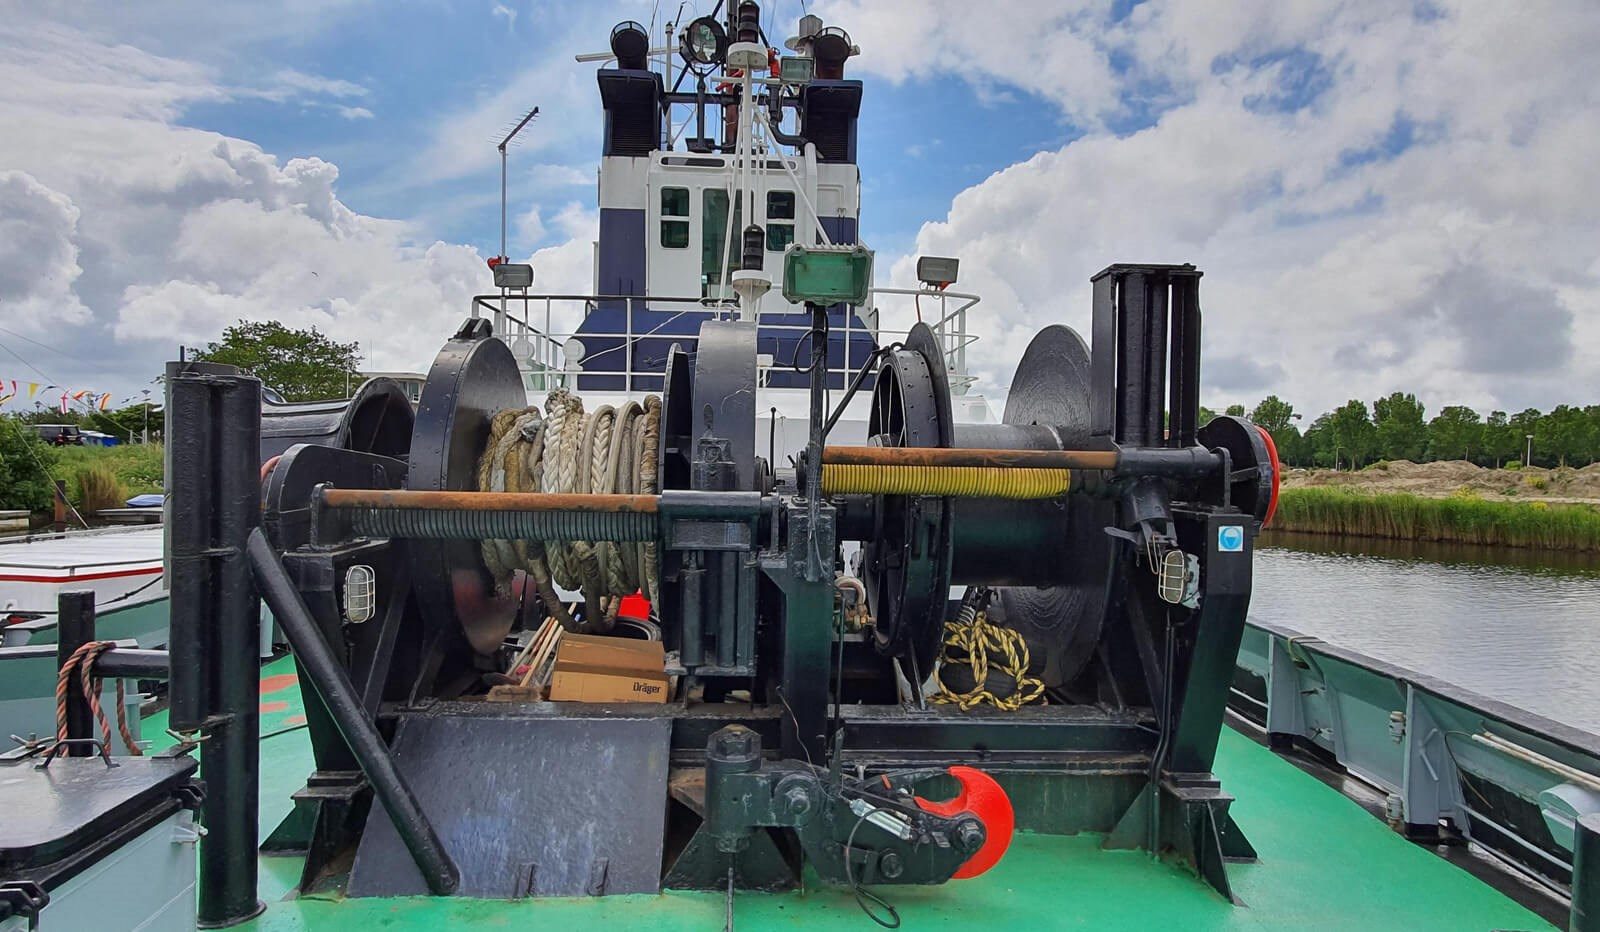 used voith tugboat for sale 07598 (13)